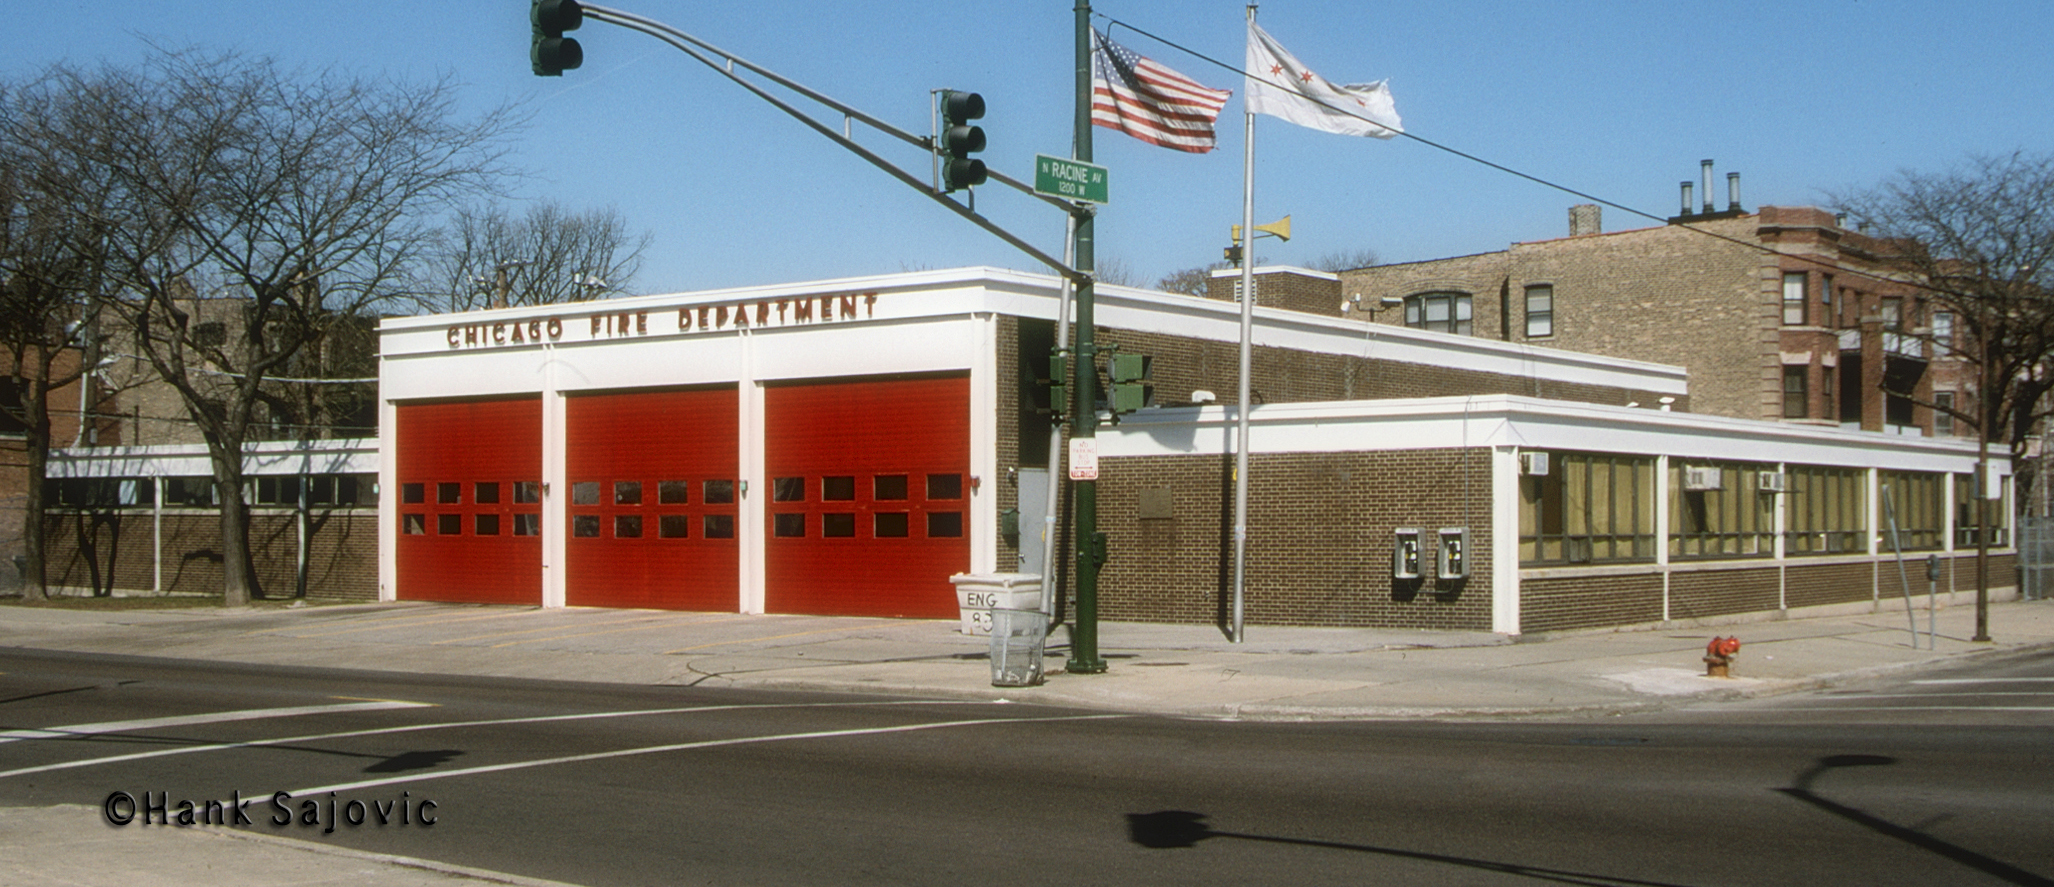 Chicago Fire Department Engine 83's house